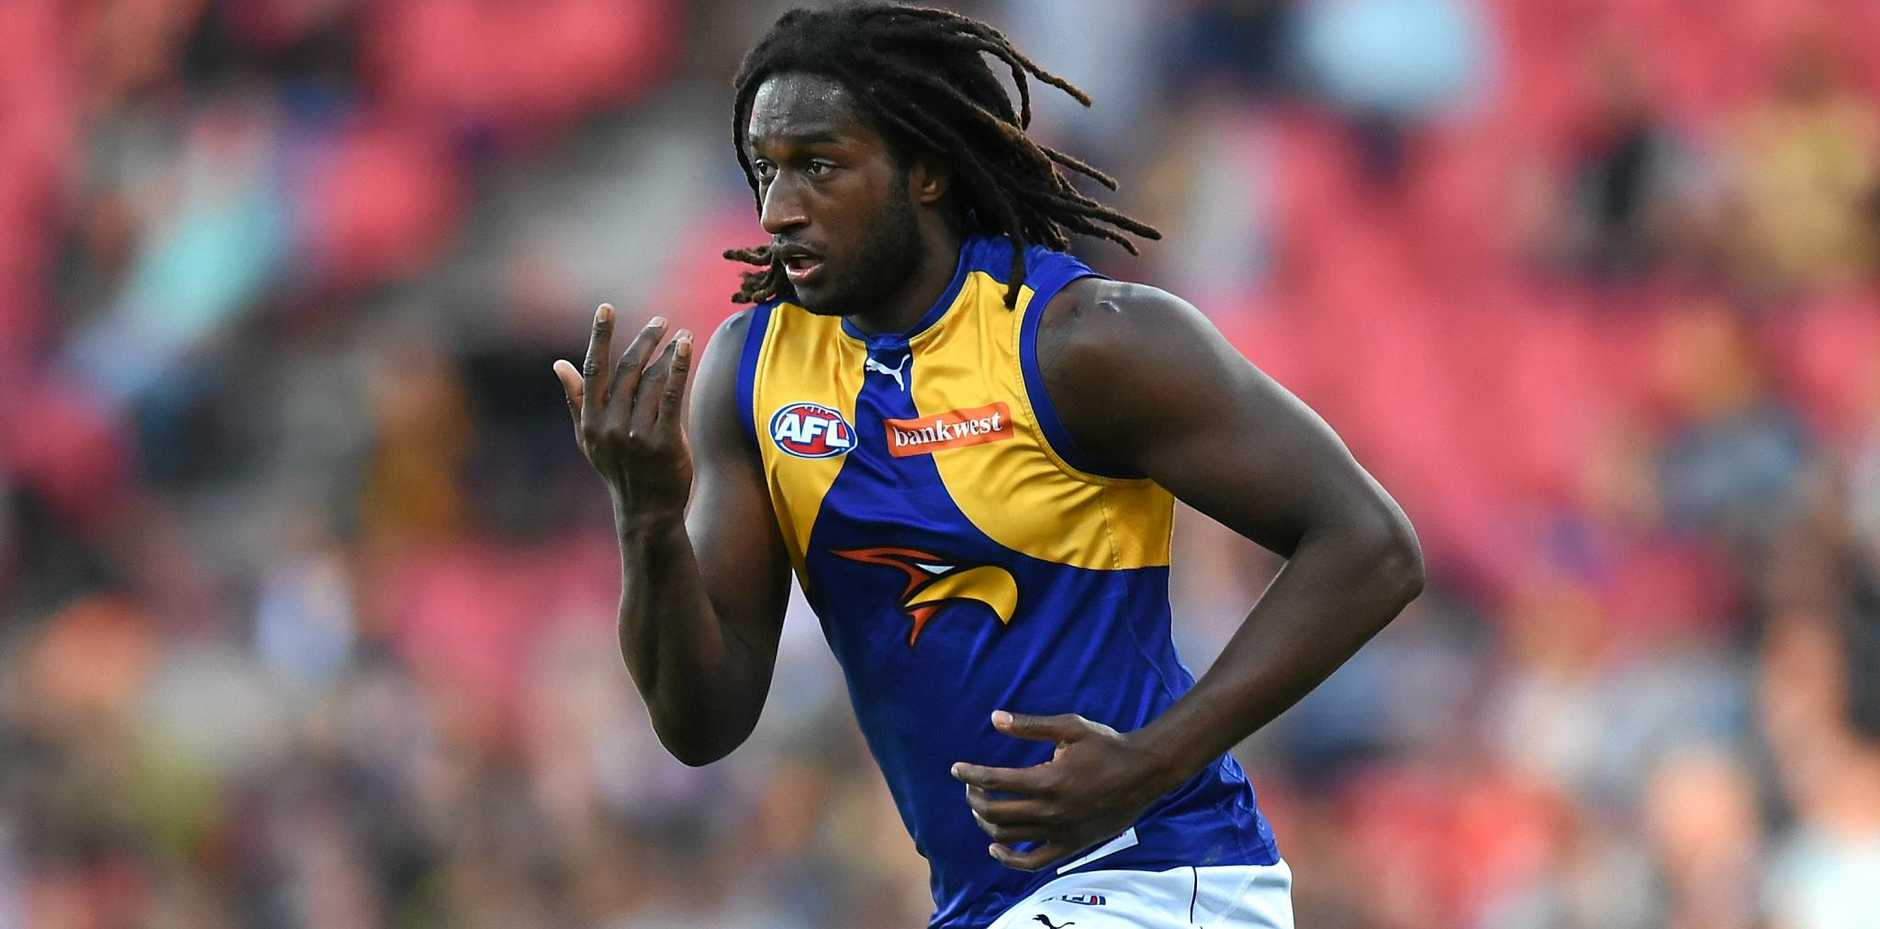 Nic Naitanui is still recovering from a knee injury.